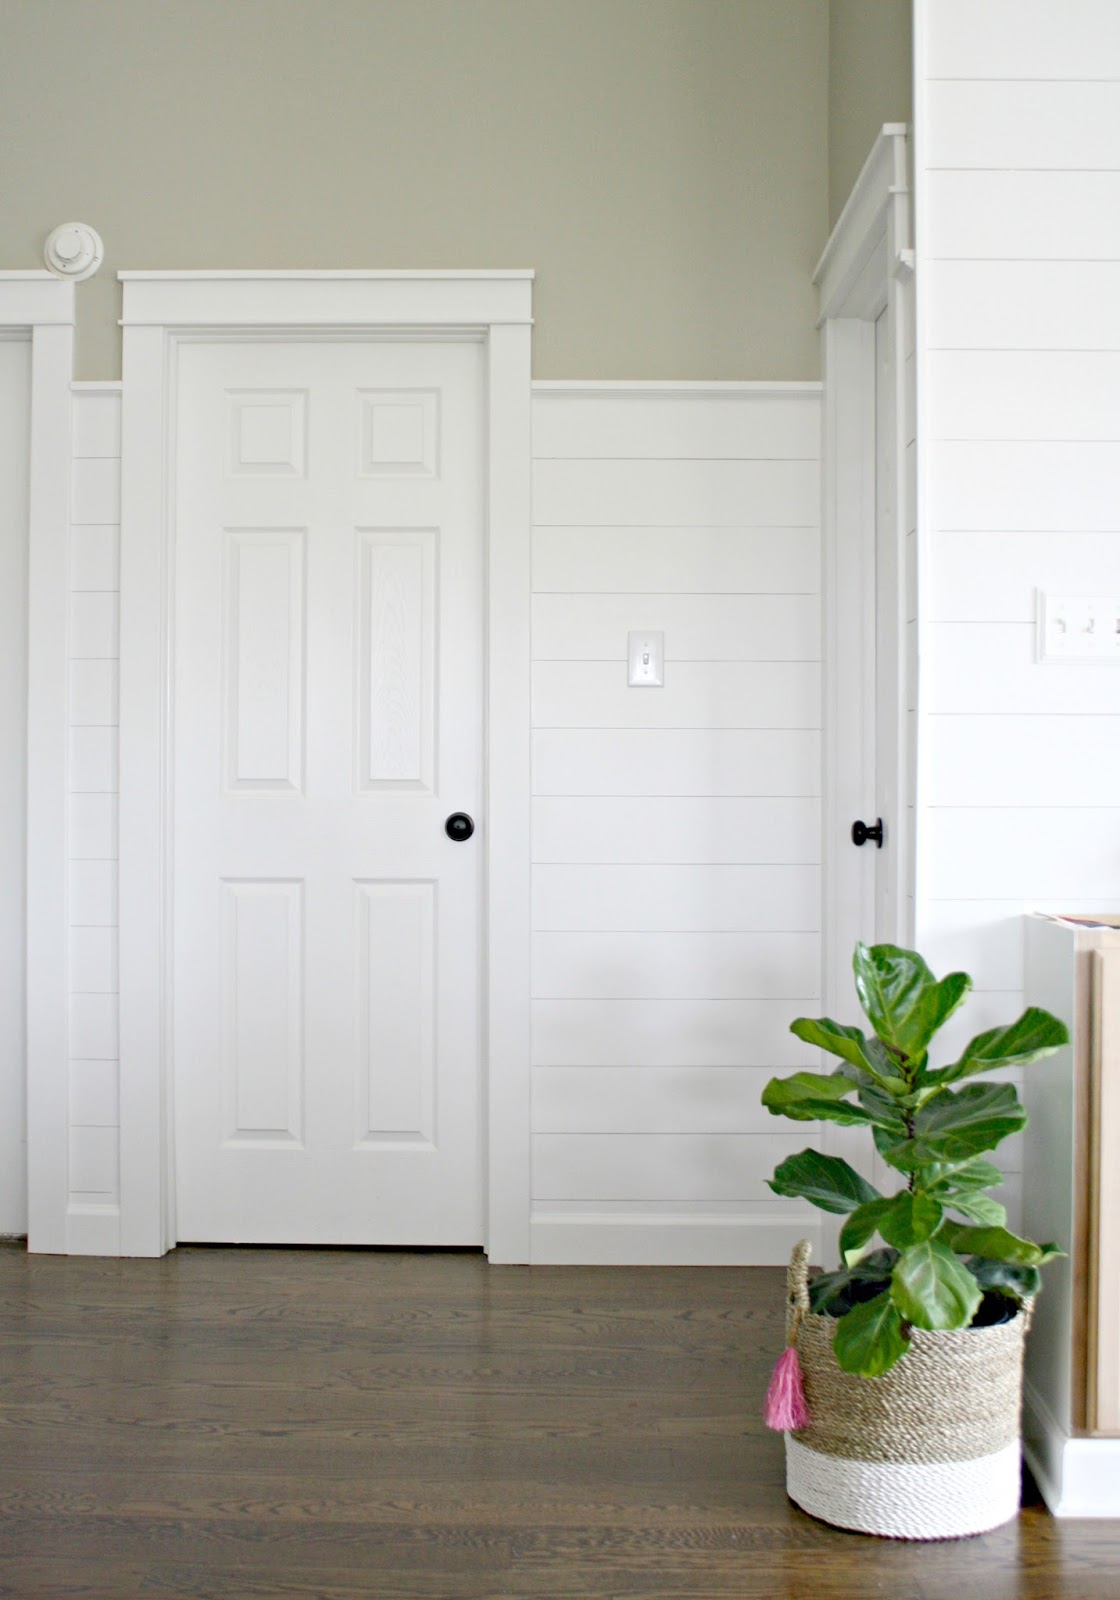 How to add shiplap to walls